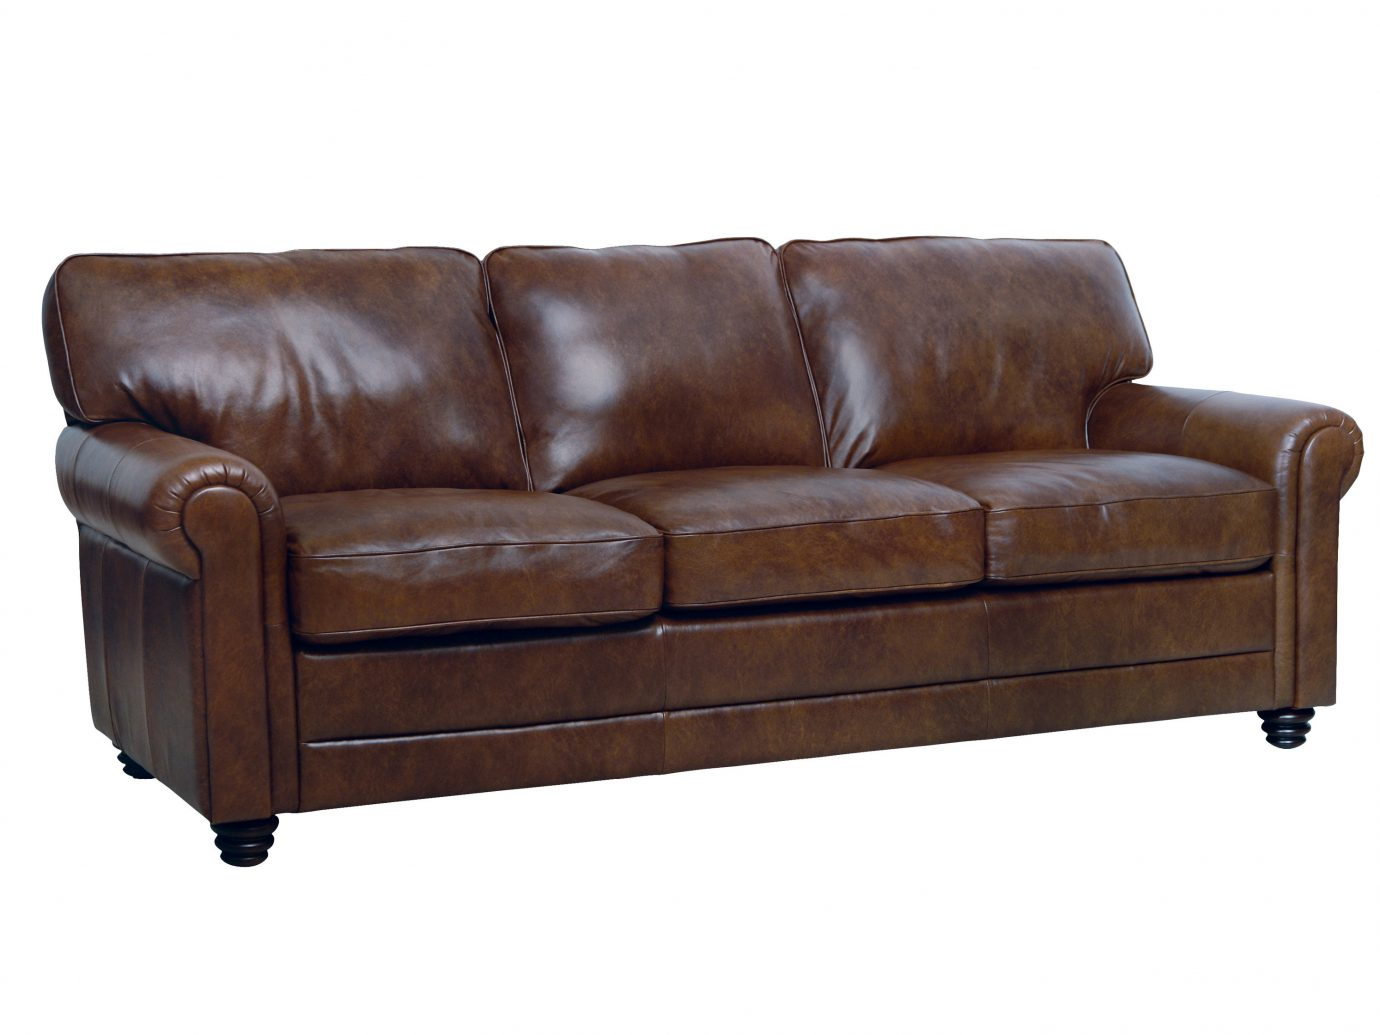 Amsterdam Style + Design The Netherlands Travel Shop sofa leather Living indoor seat brown furniture room couch loveseat tan sofa bed angle outdoor sofa product design hardwood studio couch comfort